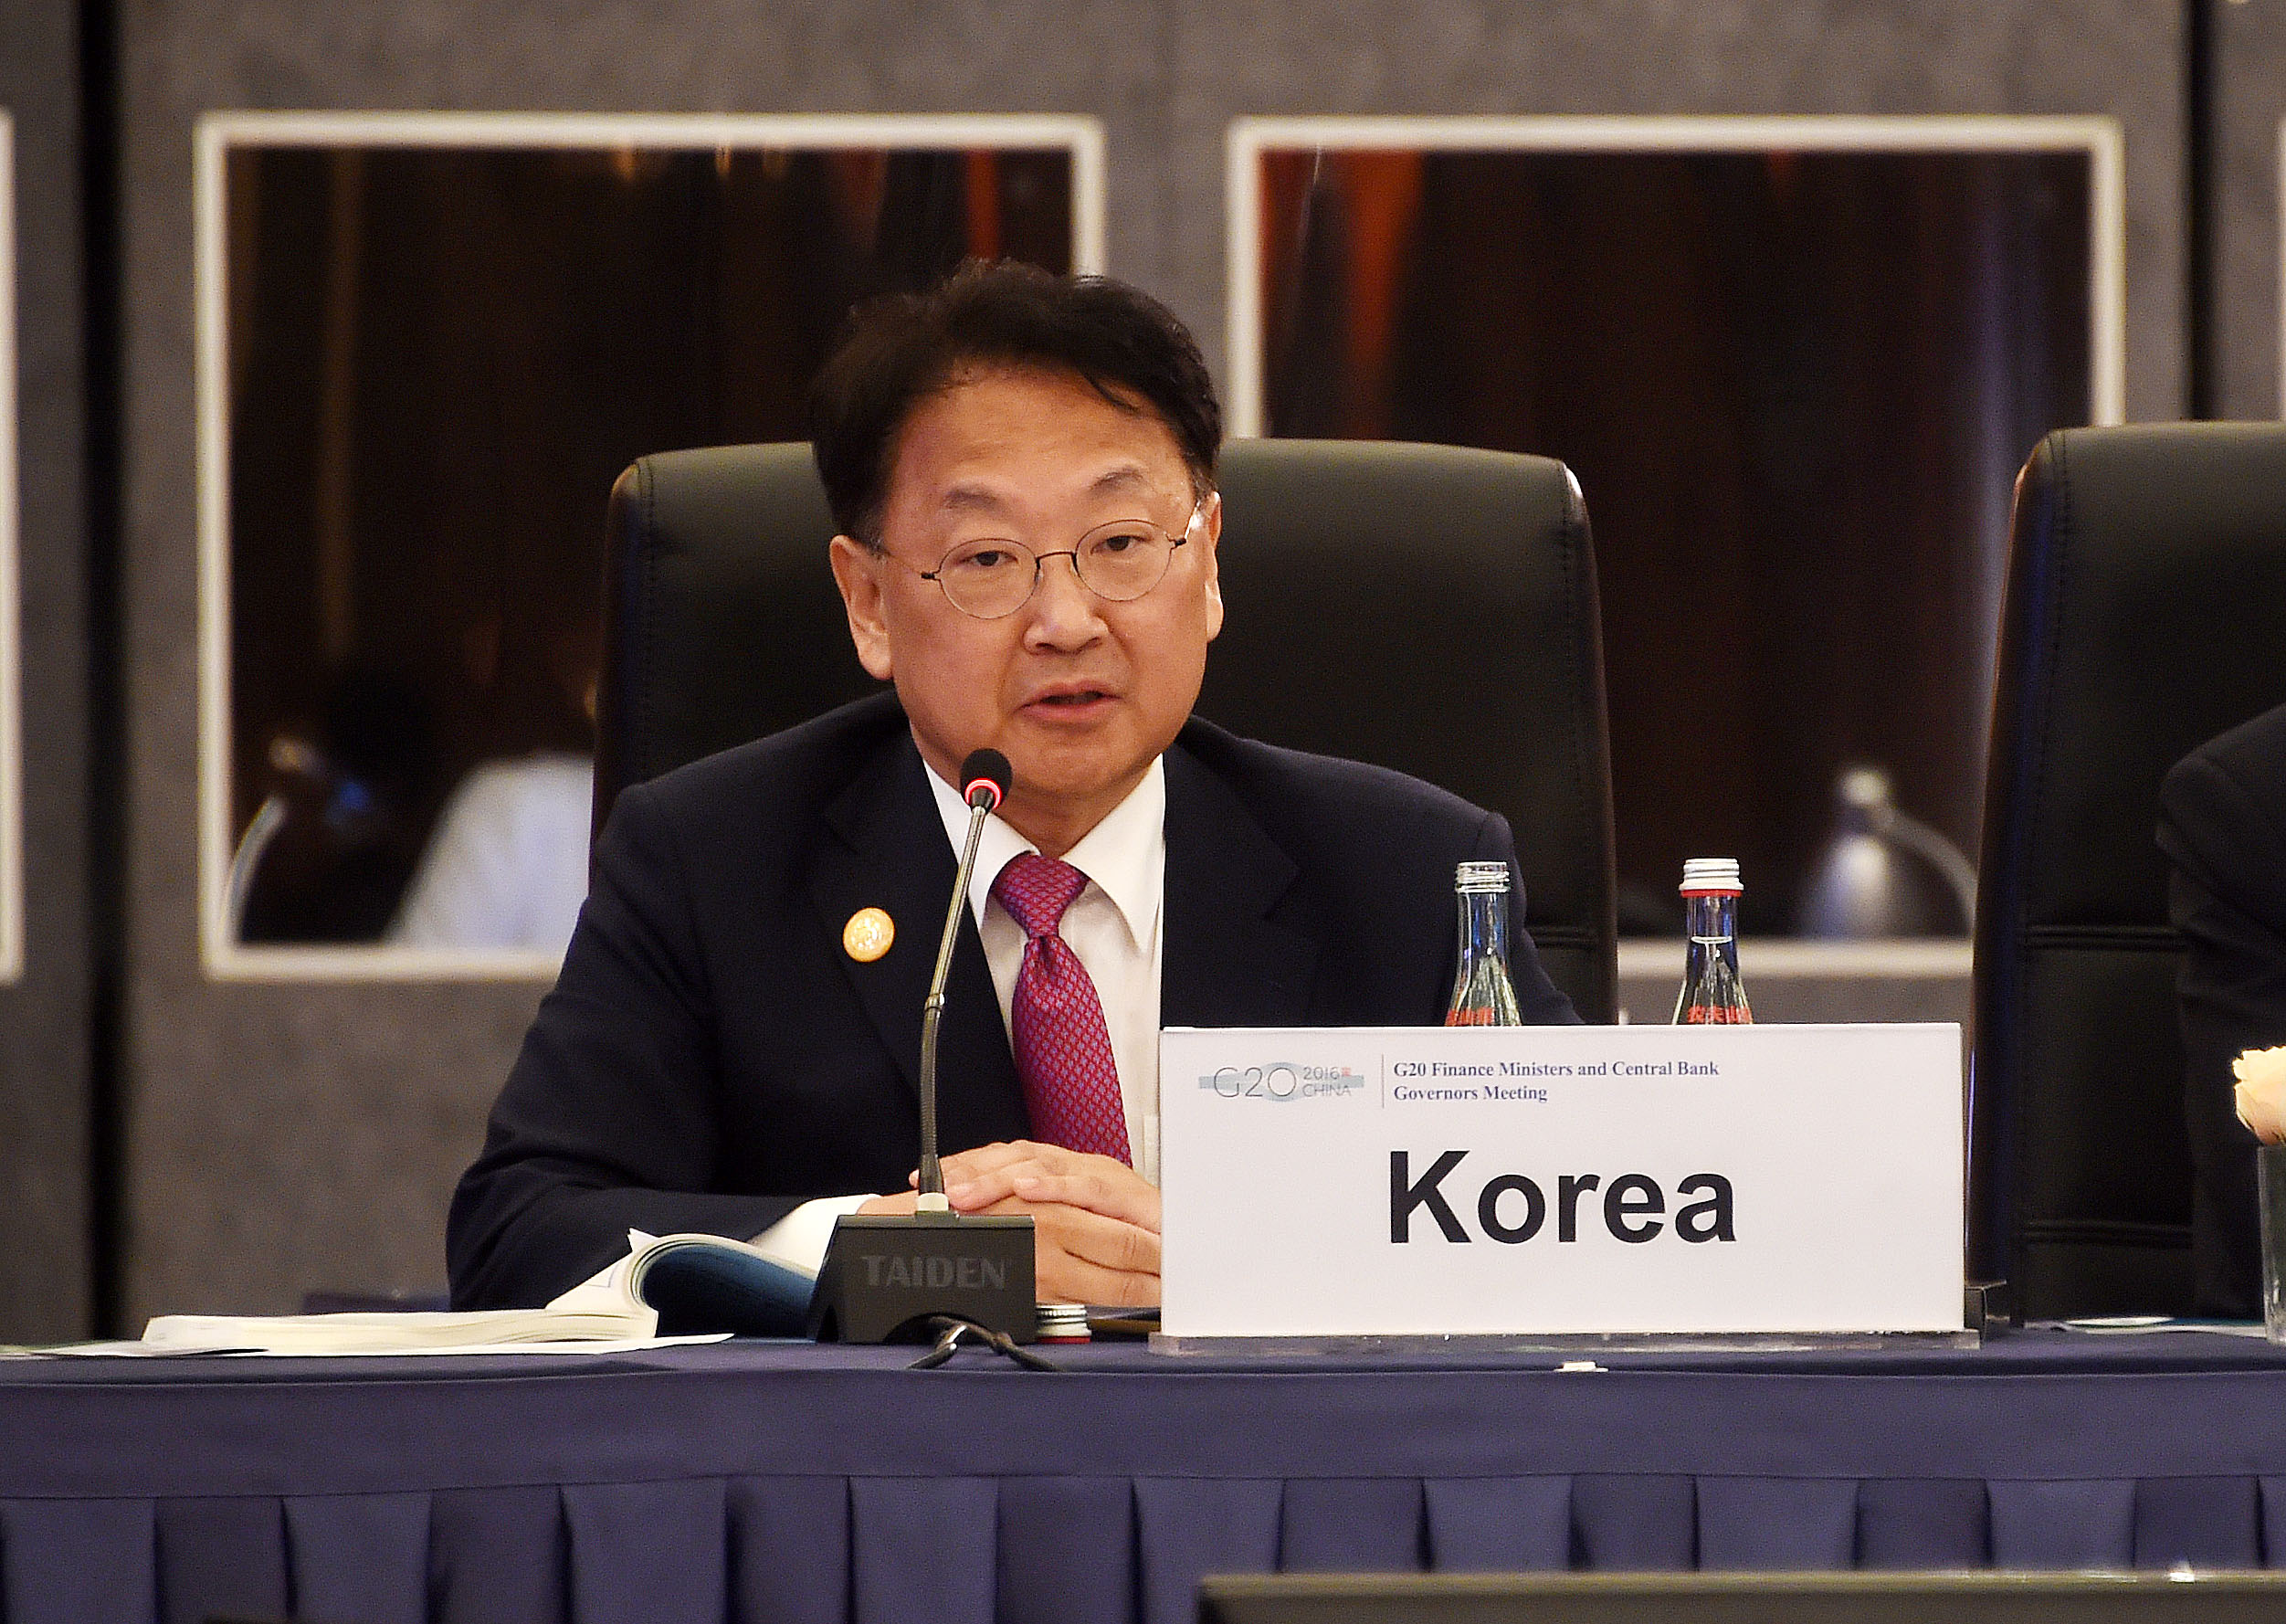 Deputy Prime Minister Yoo attends the G20 Finance Ministers and Central Bank Governors Meeting in Chengdu, China